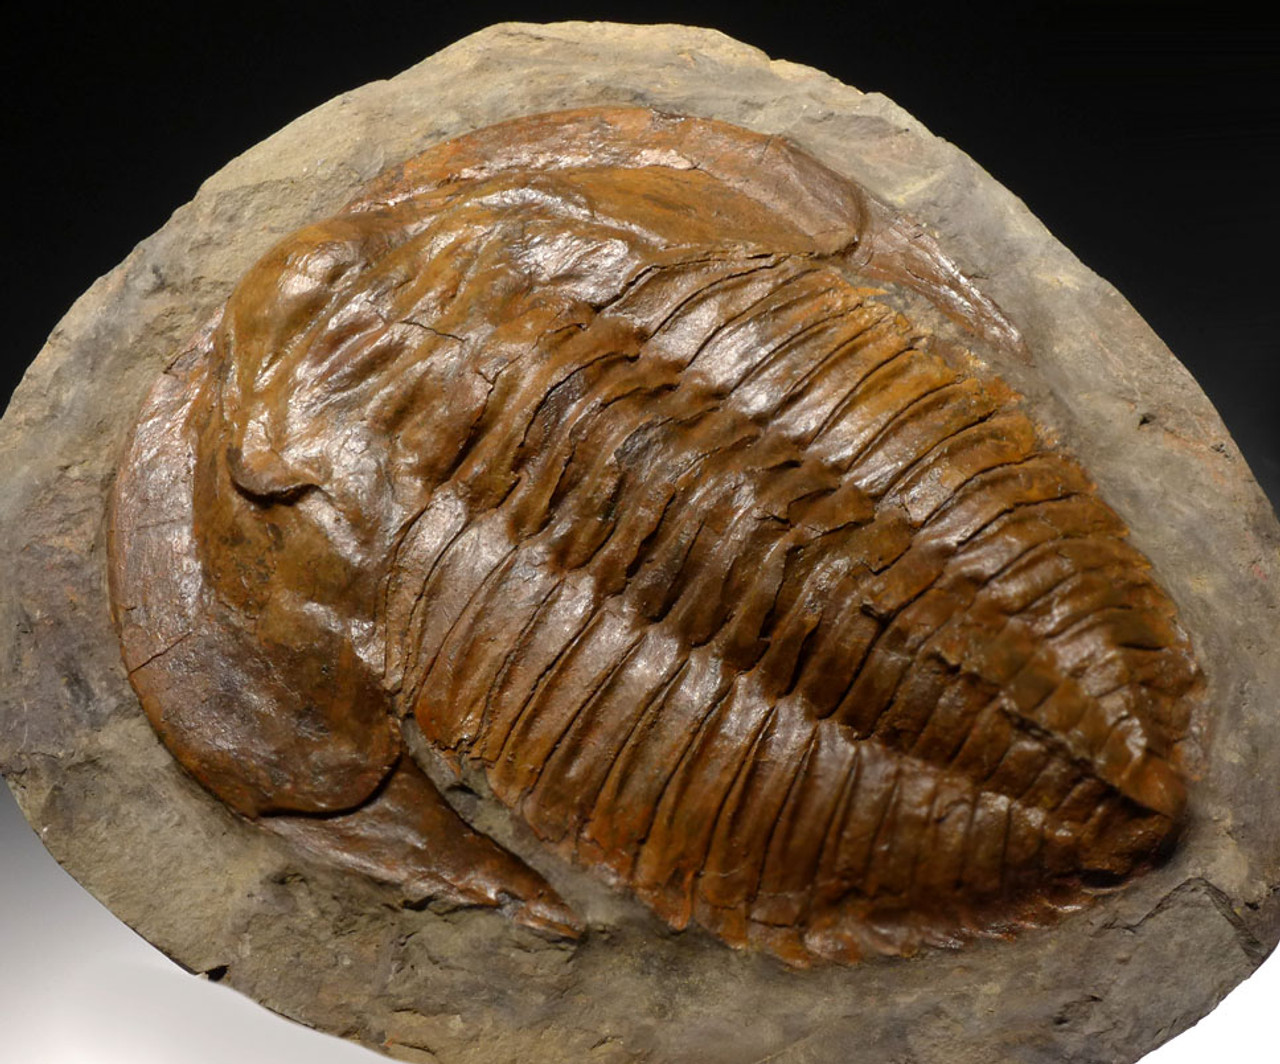 TRX339 - RARE SCIENTIFIC GRADE CAMBROPALLAS TRILOBITE POSITIVE AND NEGATIVE FOSSIL